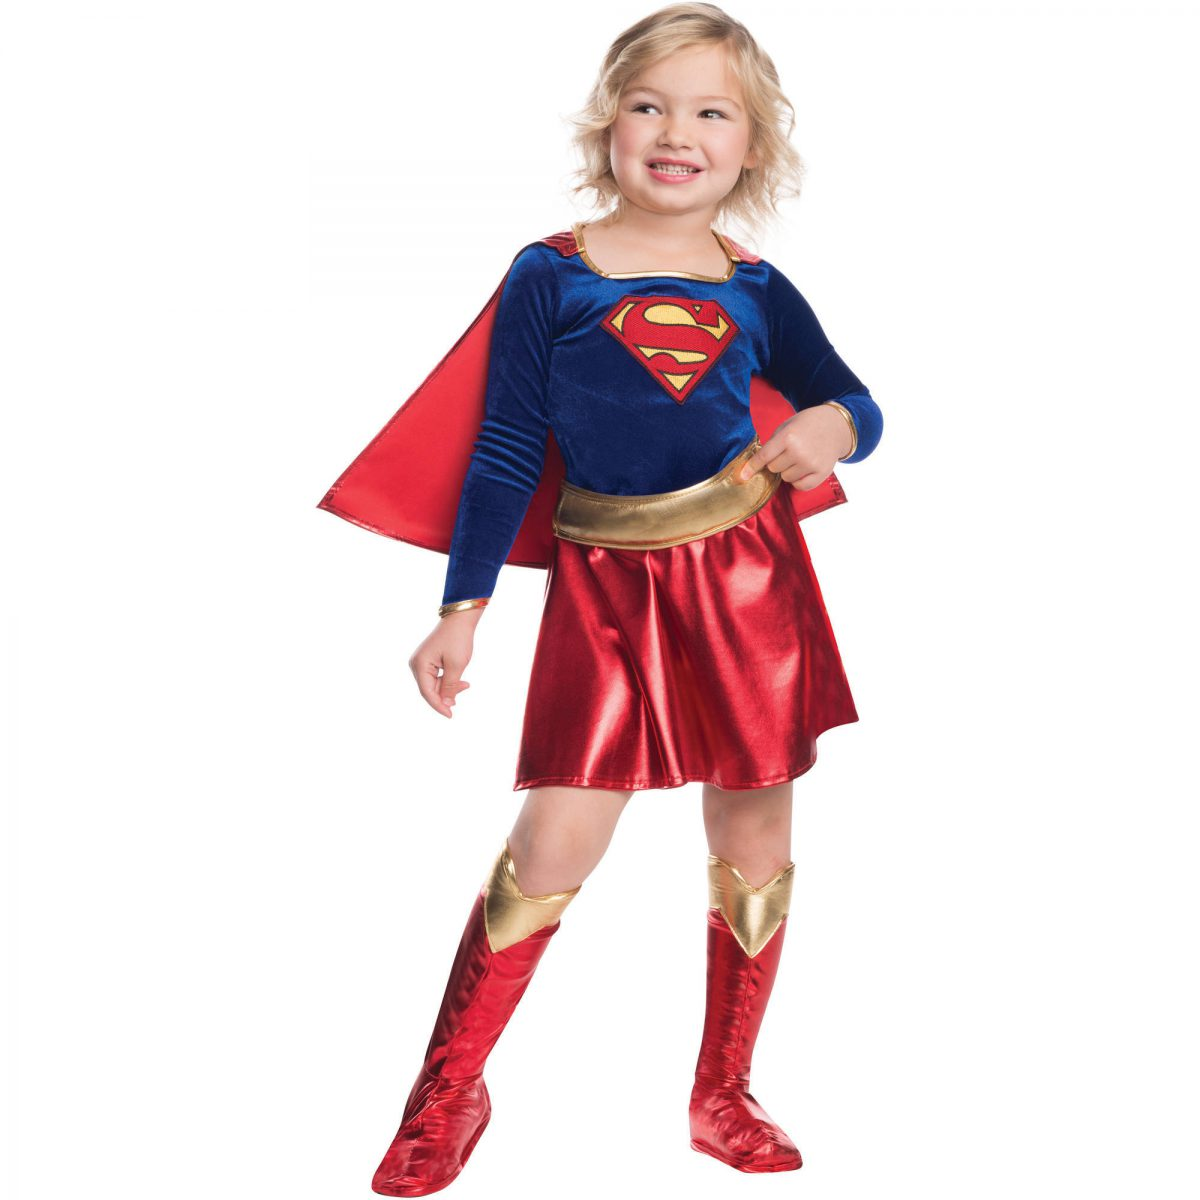 DELUXE SUPERGIRL COSTUME FOR GIRLS